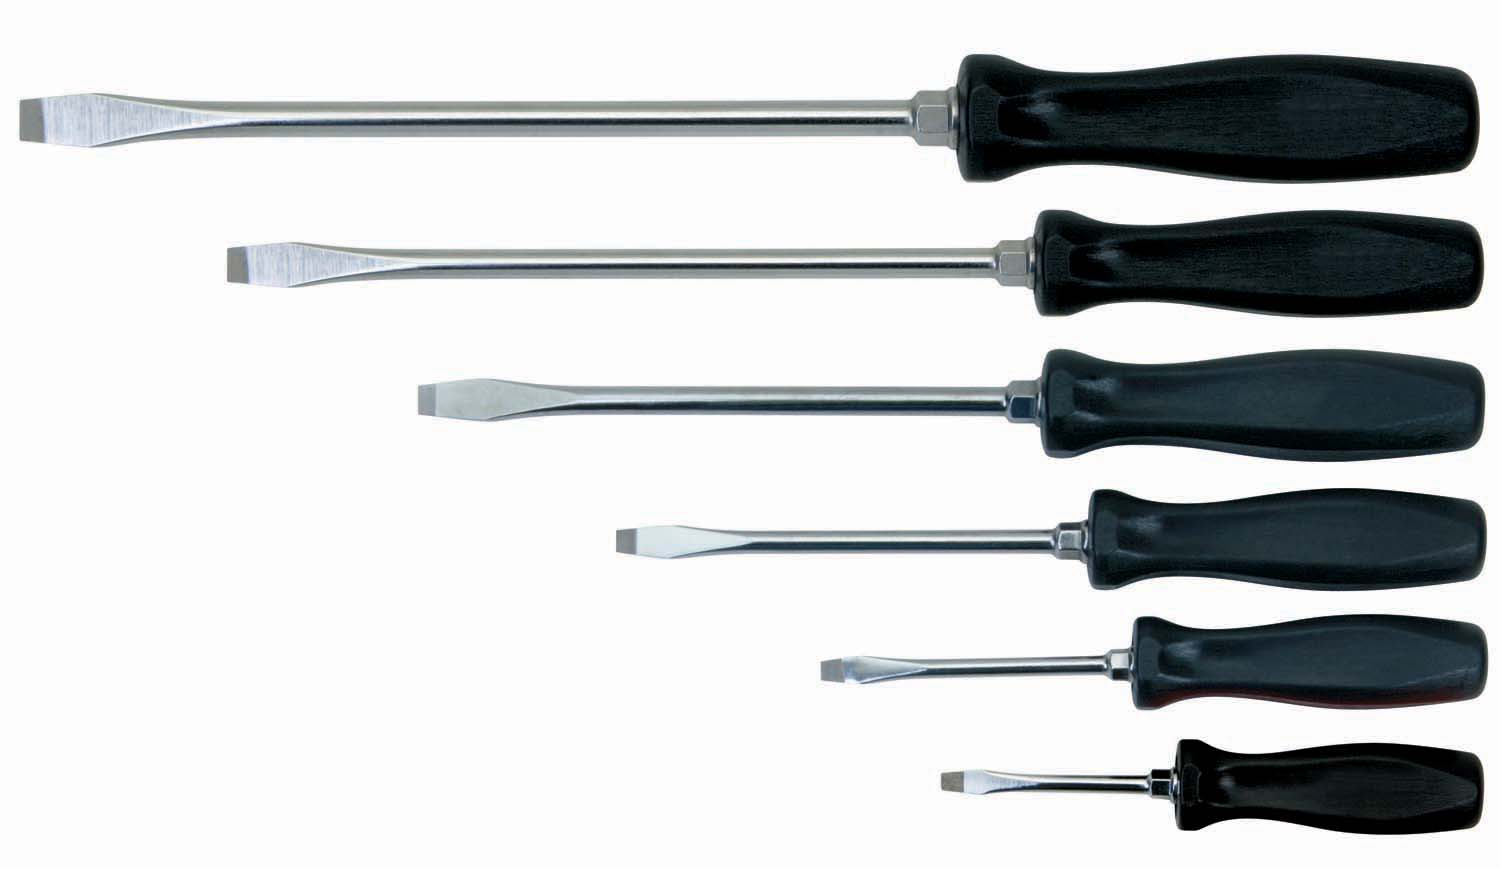 6 Piece Slotted Screwdriver Set